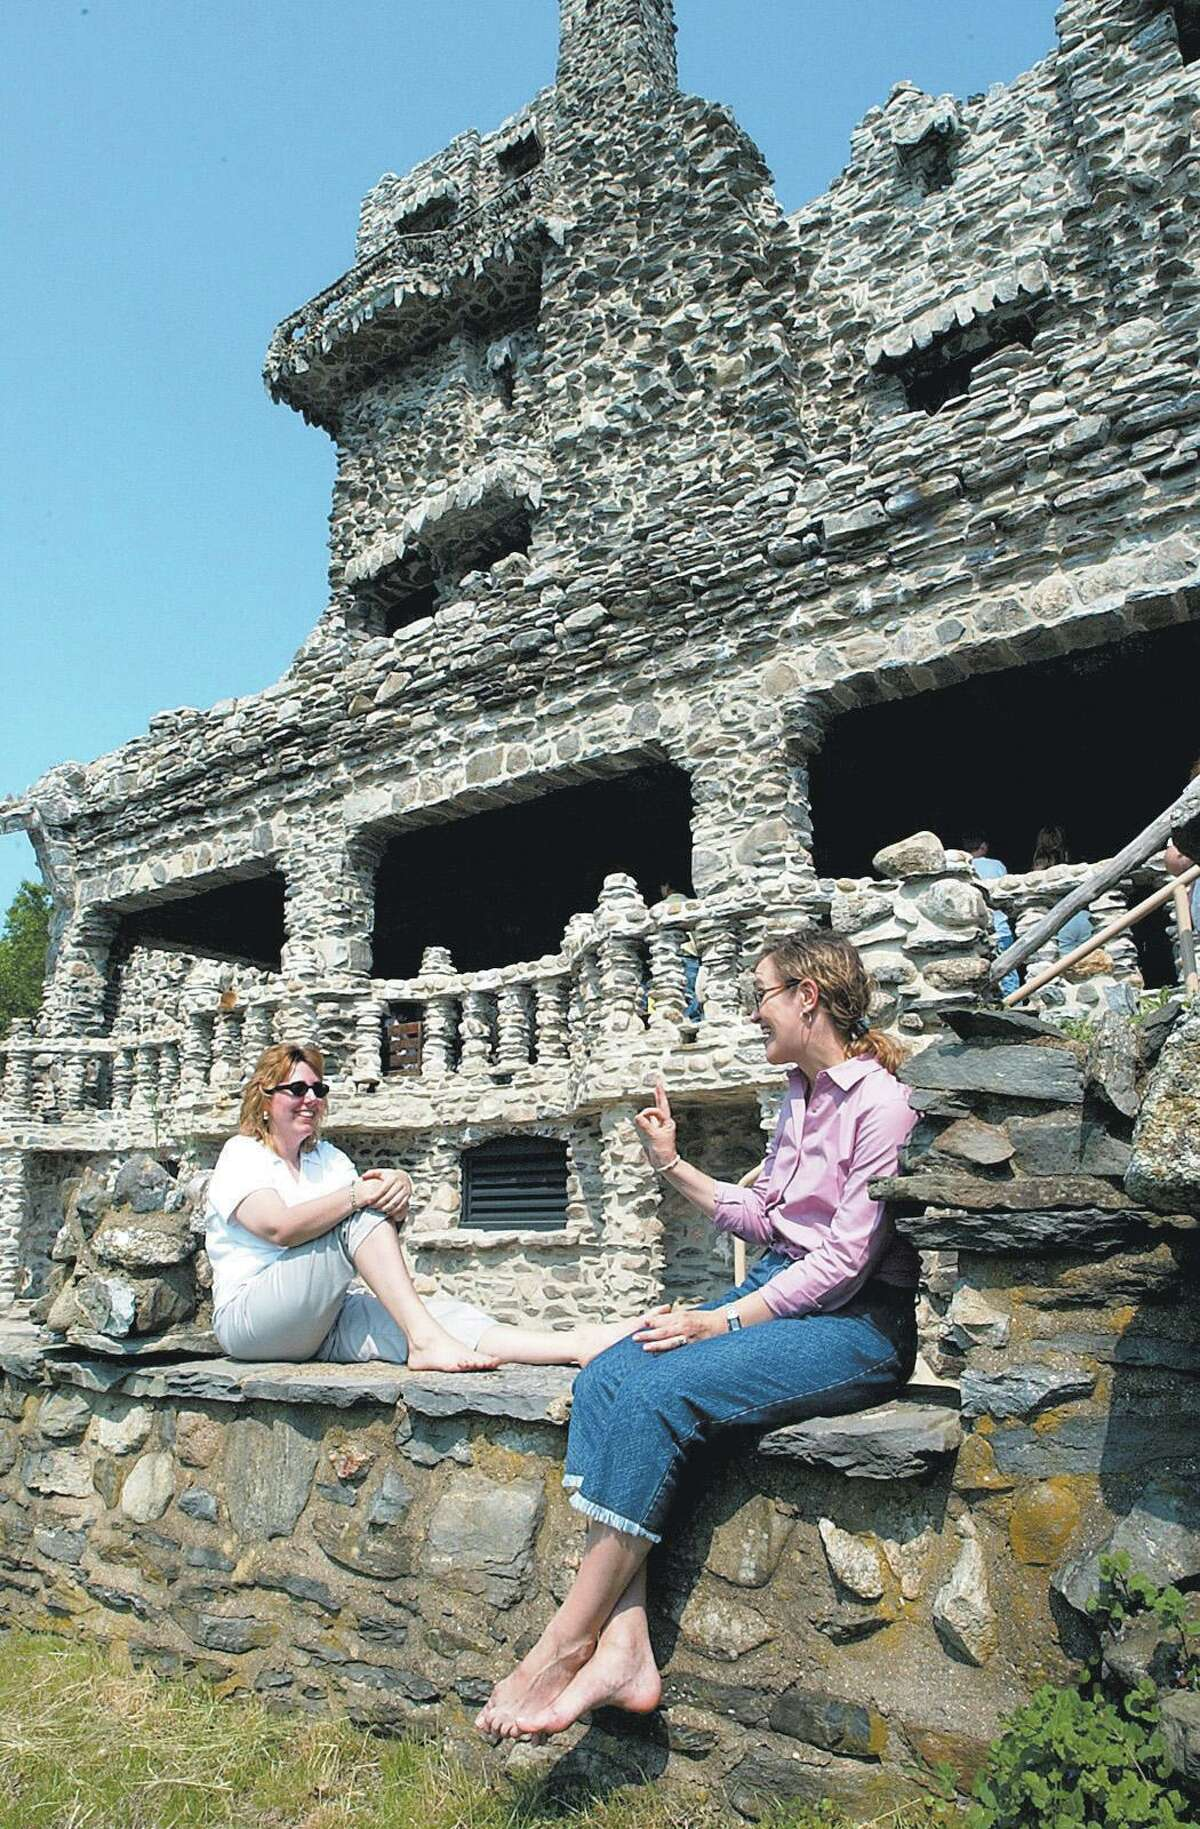 Gillette Castle is located in East Haddam.